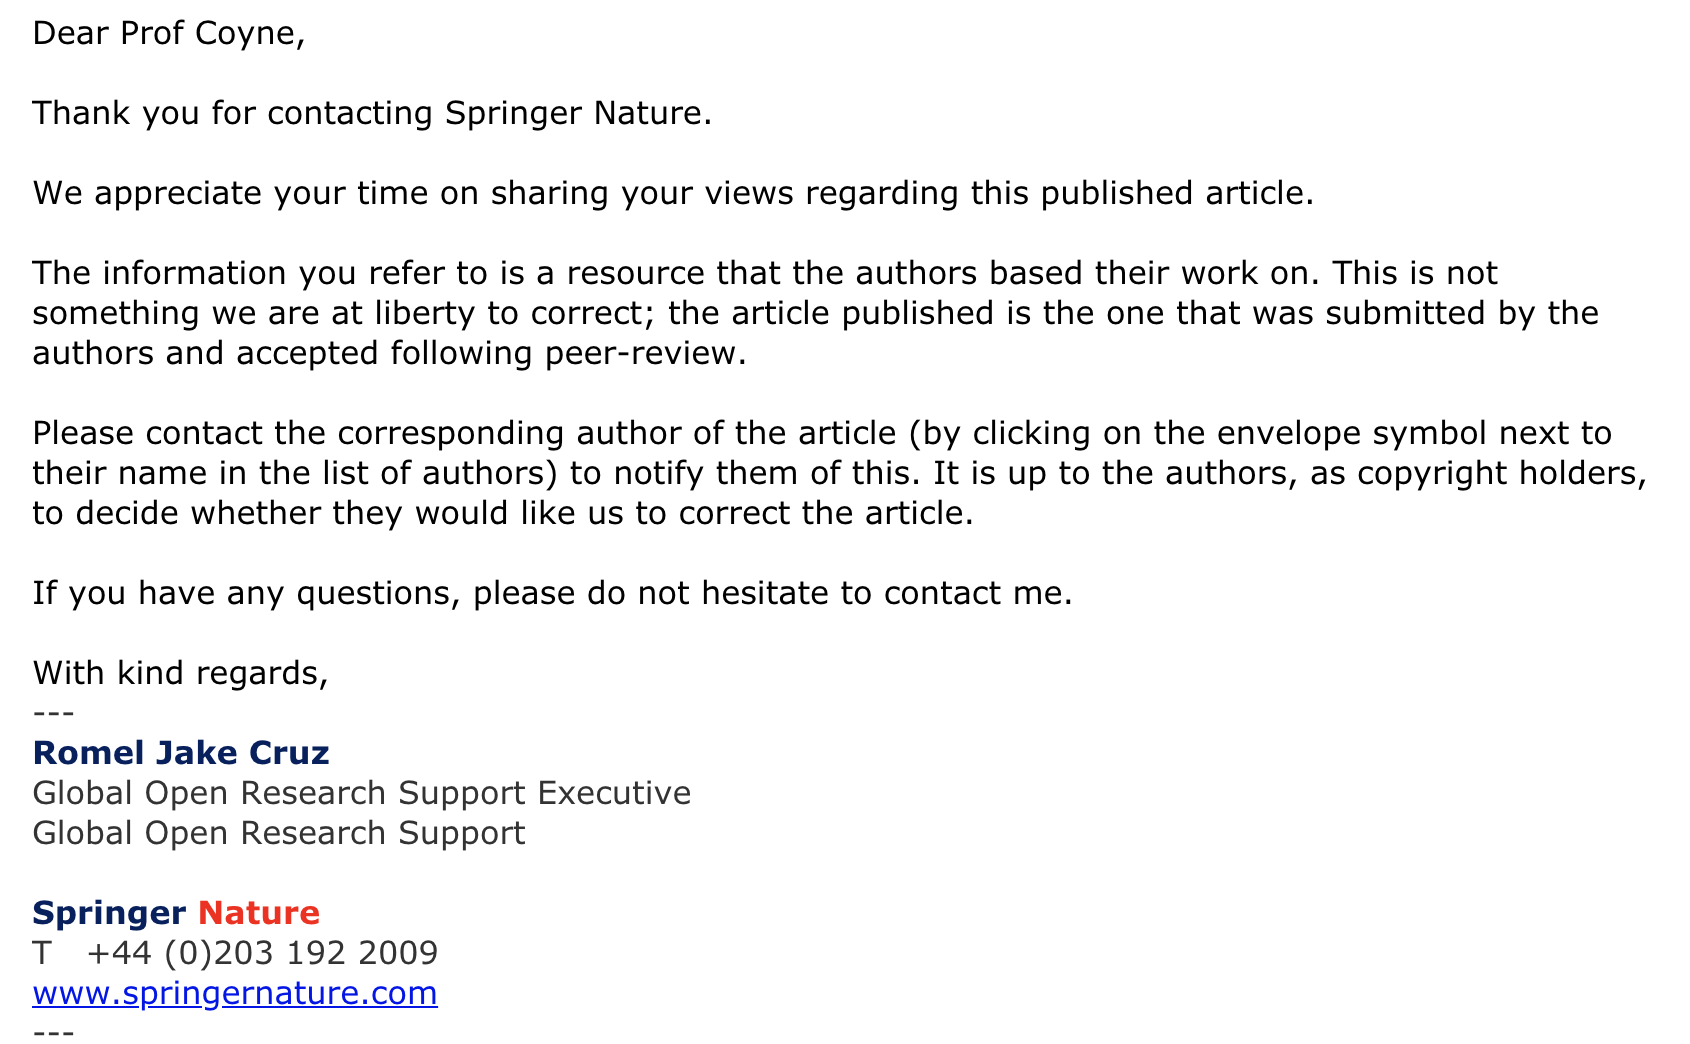 003 Research Paper How To Publish In Springer Top Journal Full